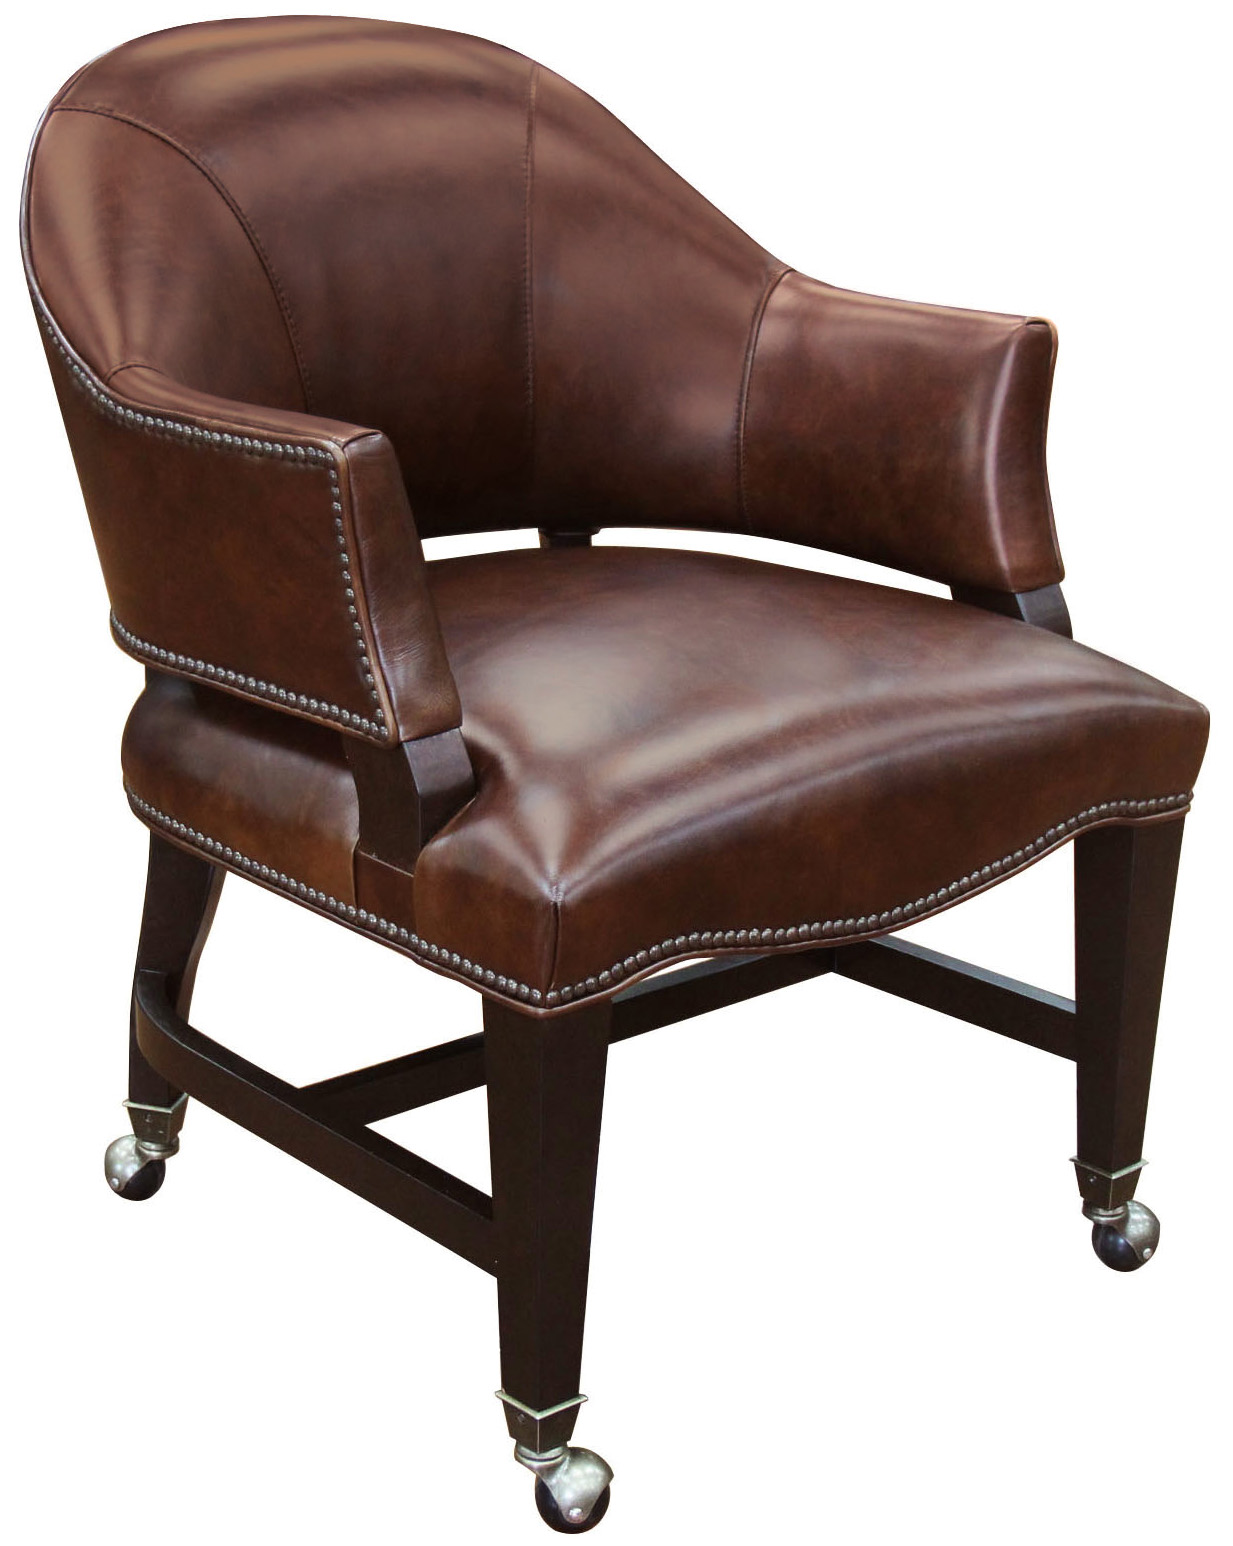 Hooker Furniture Game Chairs Isadora Nut Game Chair - Item Number: GC100-086